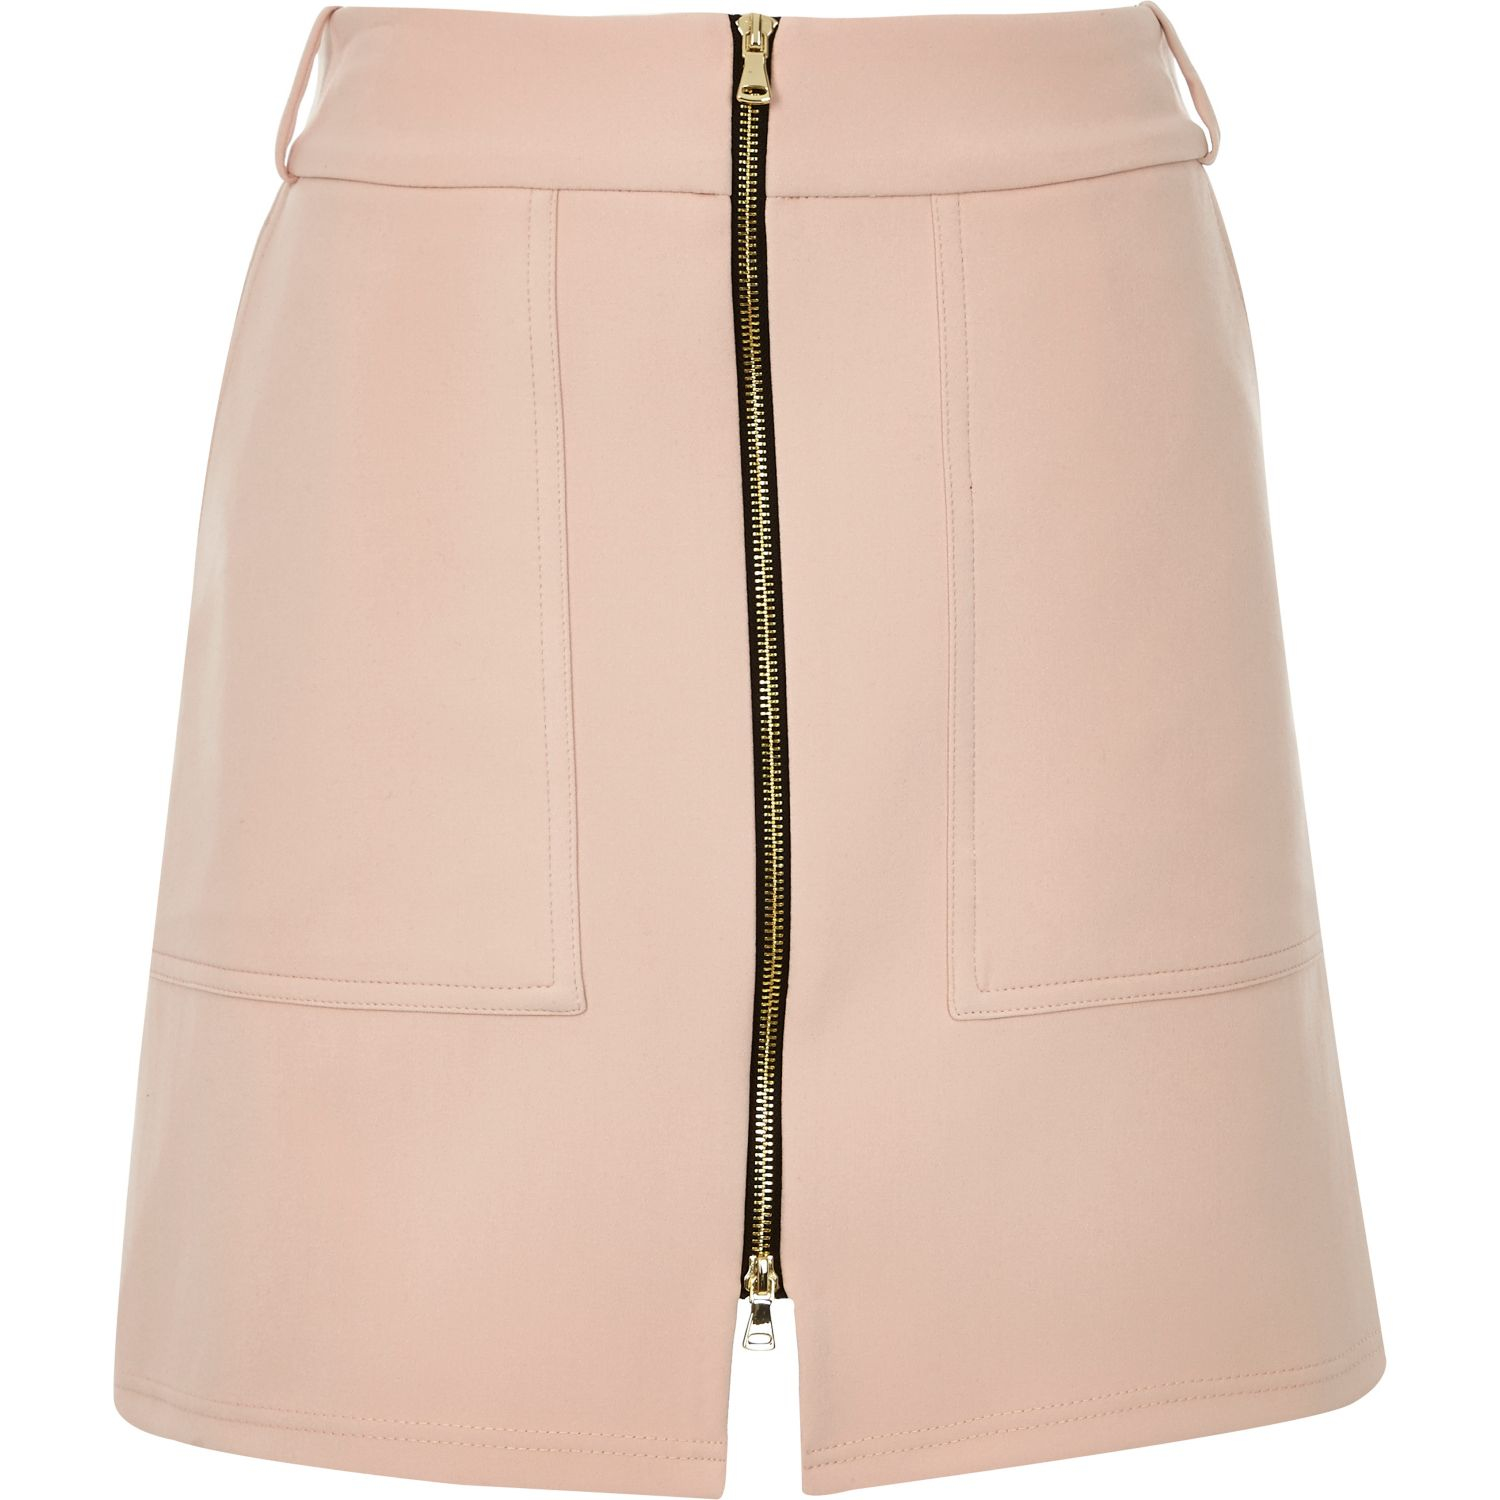 River island Light Pink Zip-up A-line Skirt in Pink | Lyst